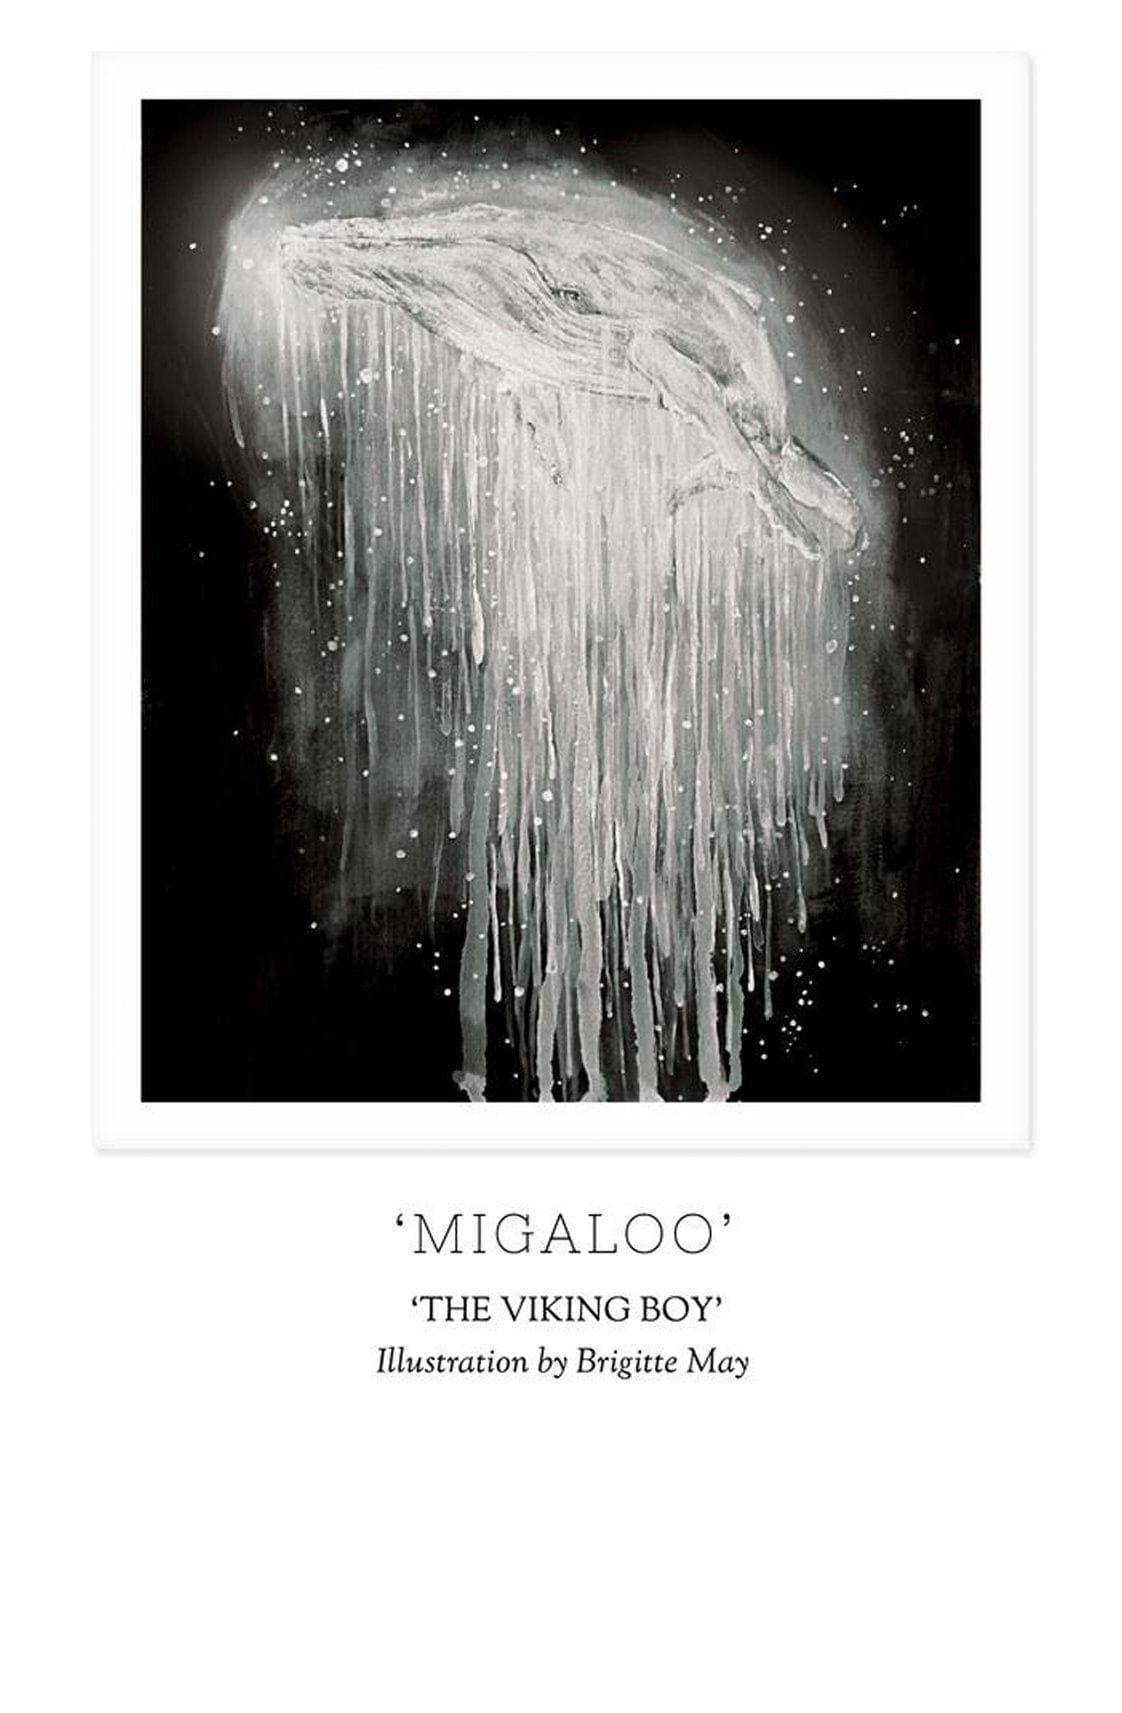 Unclebearskin Productions, THE VIKING BOY - 'MIGALOO' Print